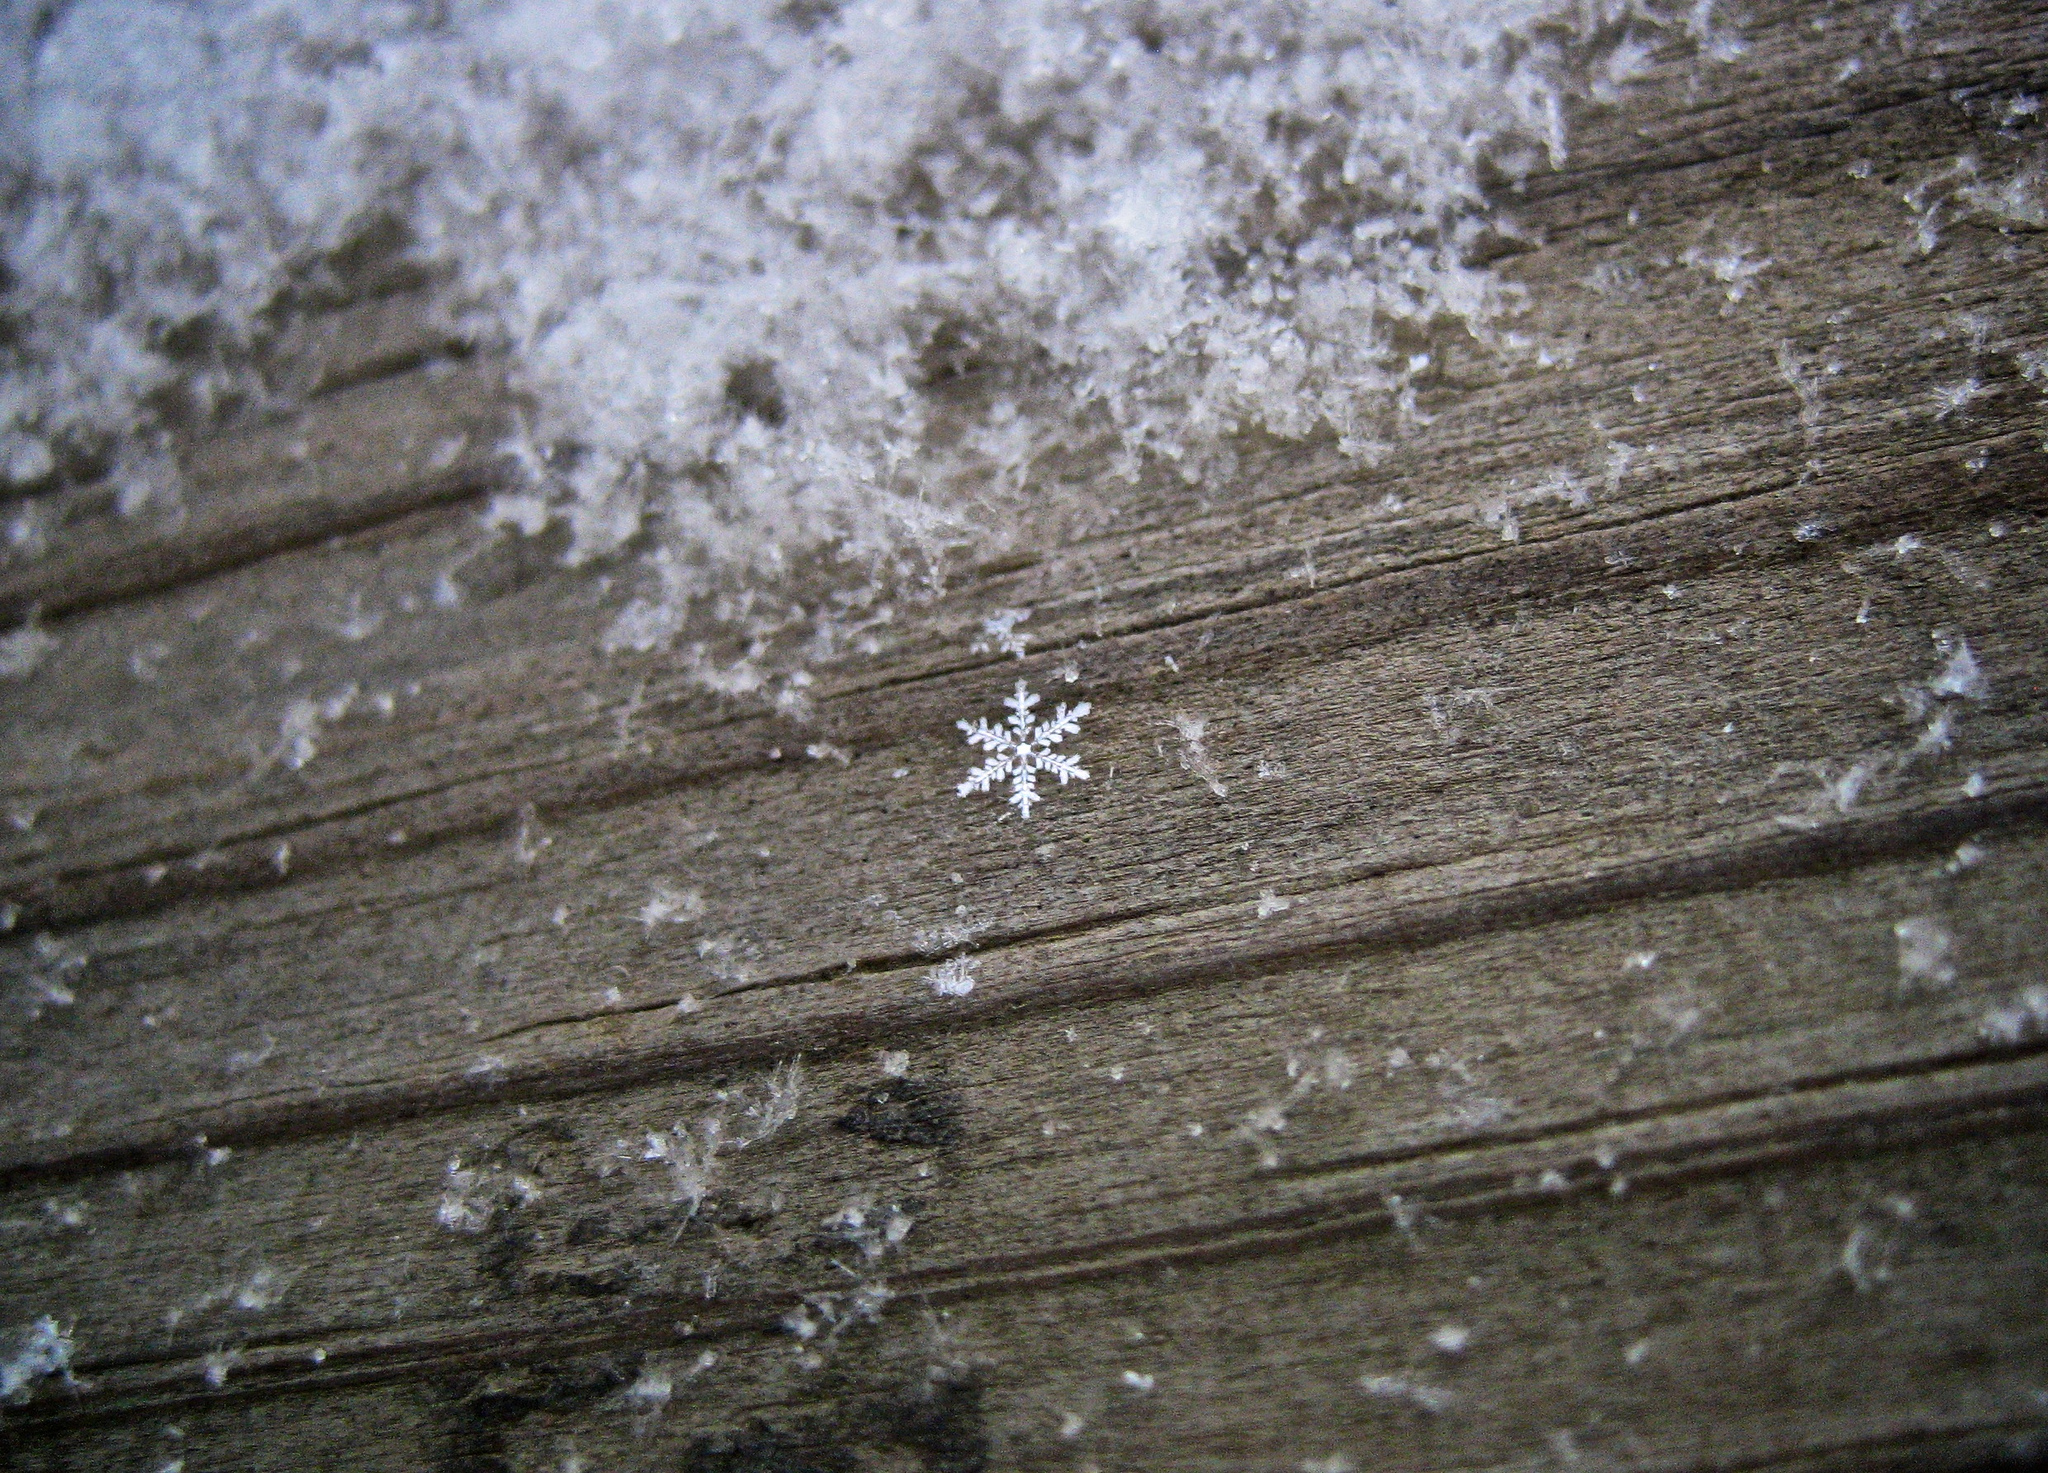 APerfectSnowflake_Lindsy.Carranza.Flickr